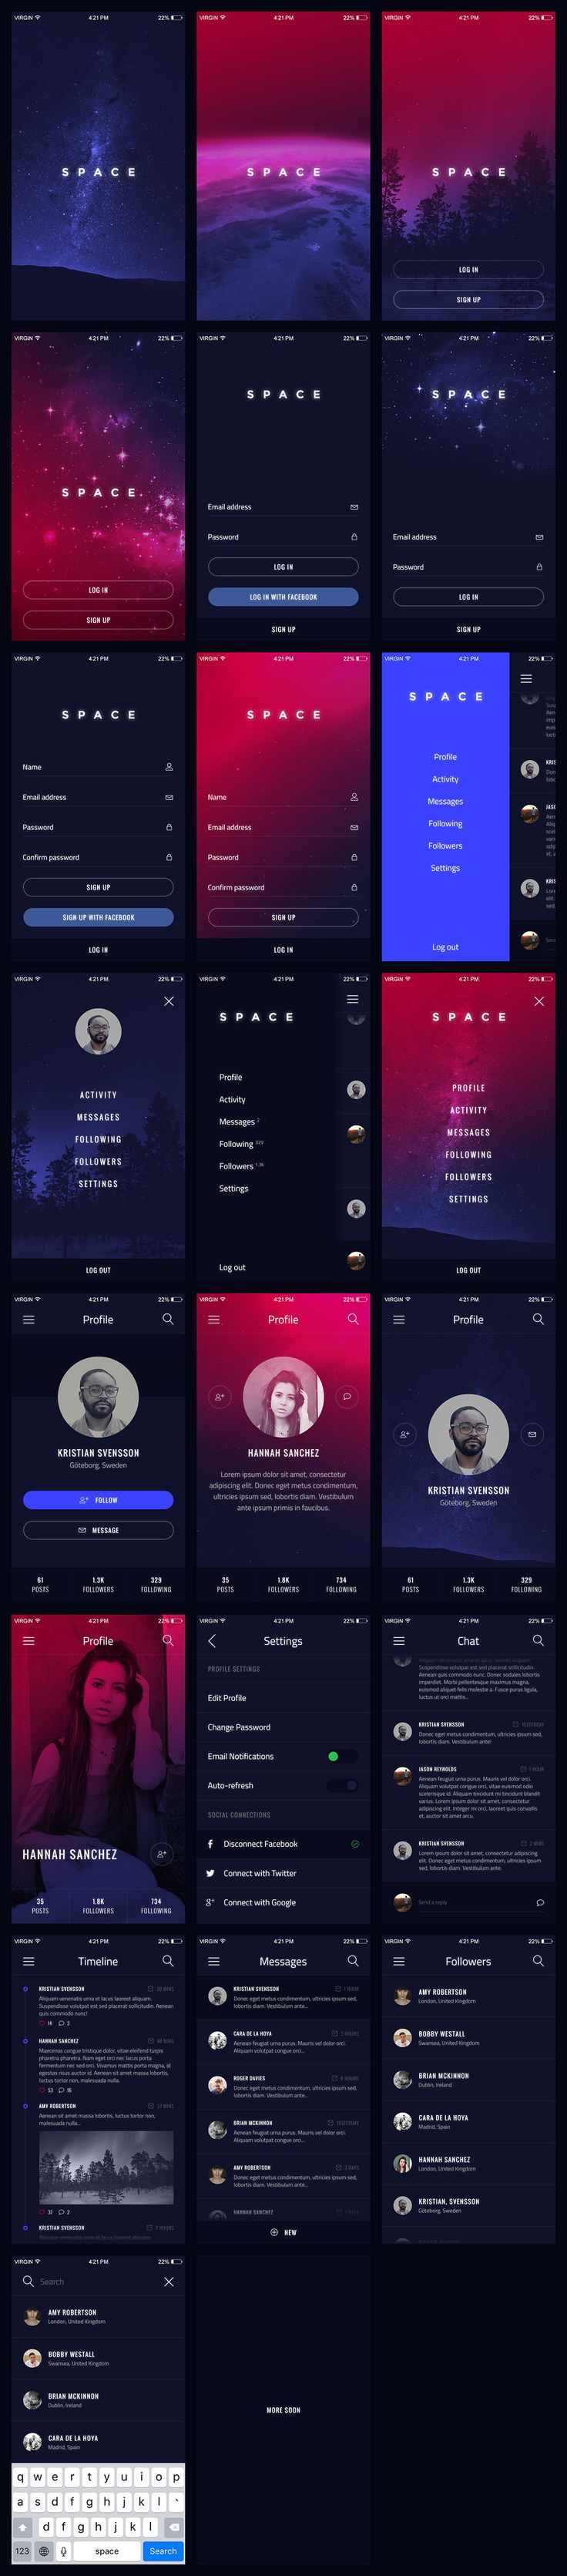 Space: iOS / Android UI Kit by jsnrynlds on Creative Market